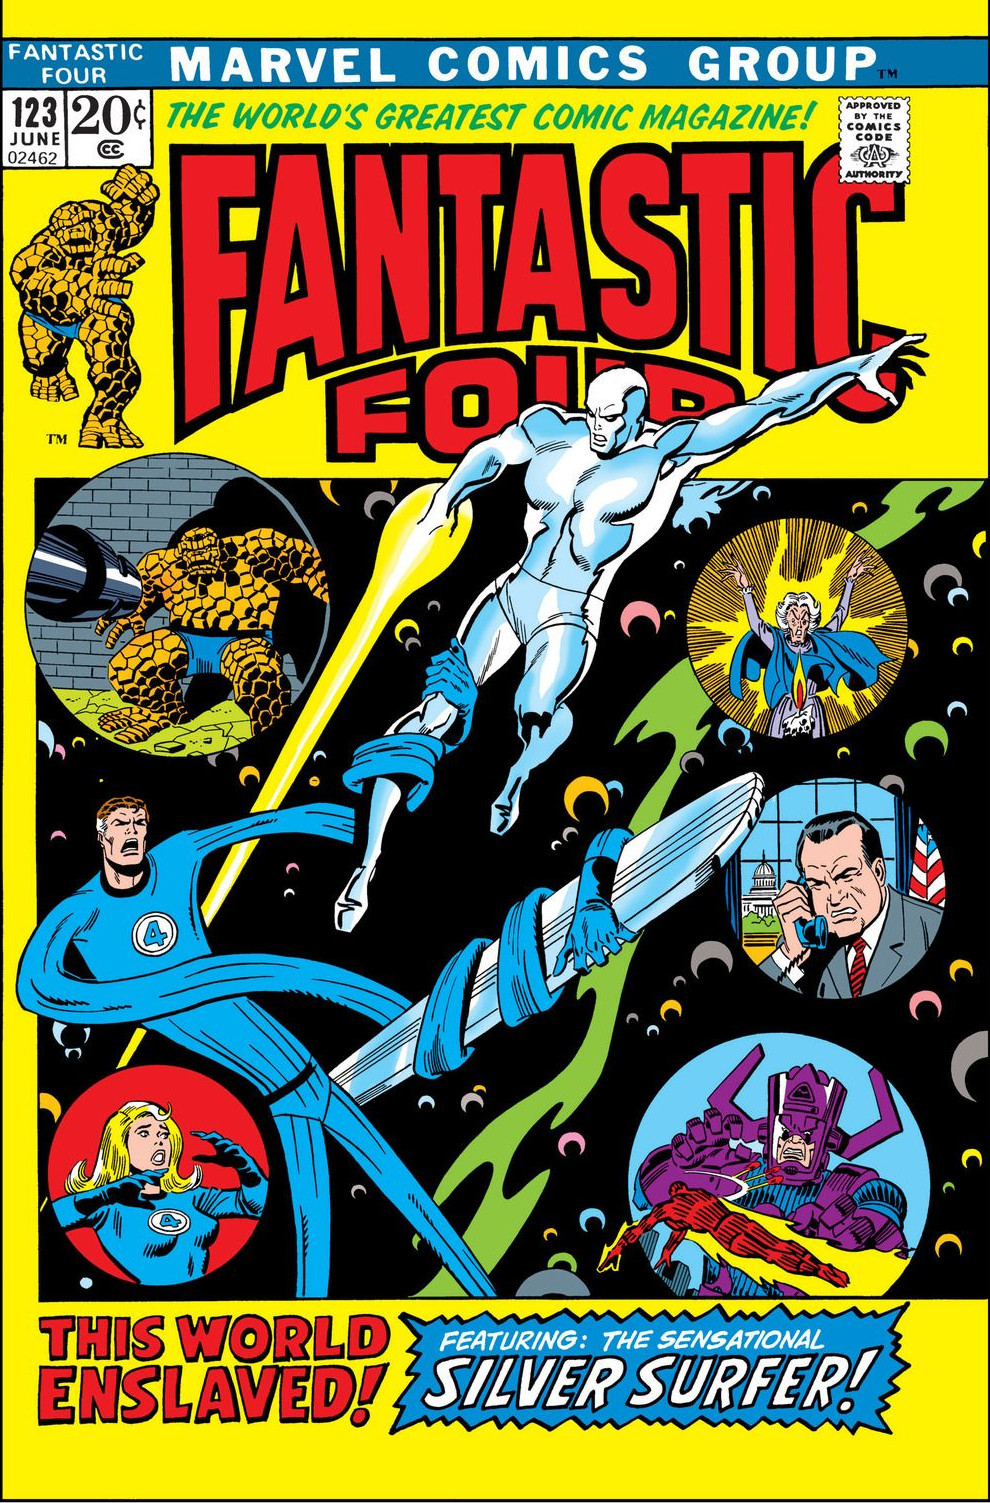 Fantastic Four Vol 1 123.jpg